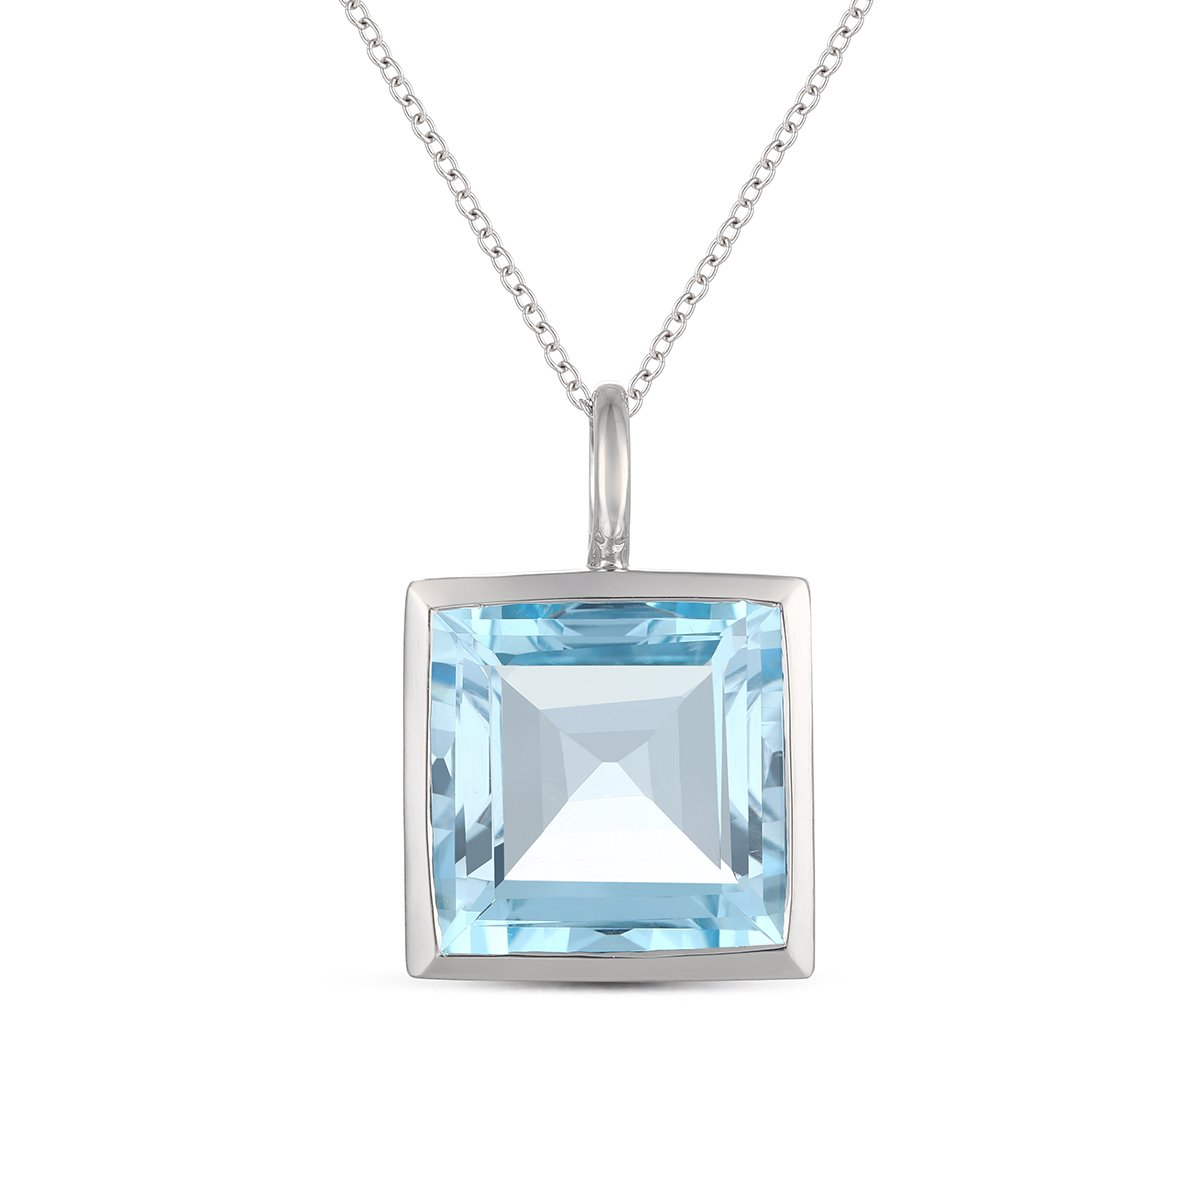 Jewel Ivy Mother's Day Gift, 925 Sterling Silver Pendant with Sky Blue Topaz